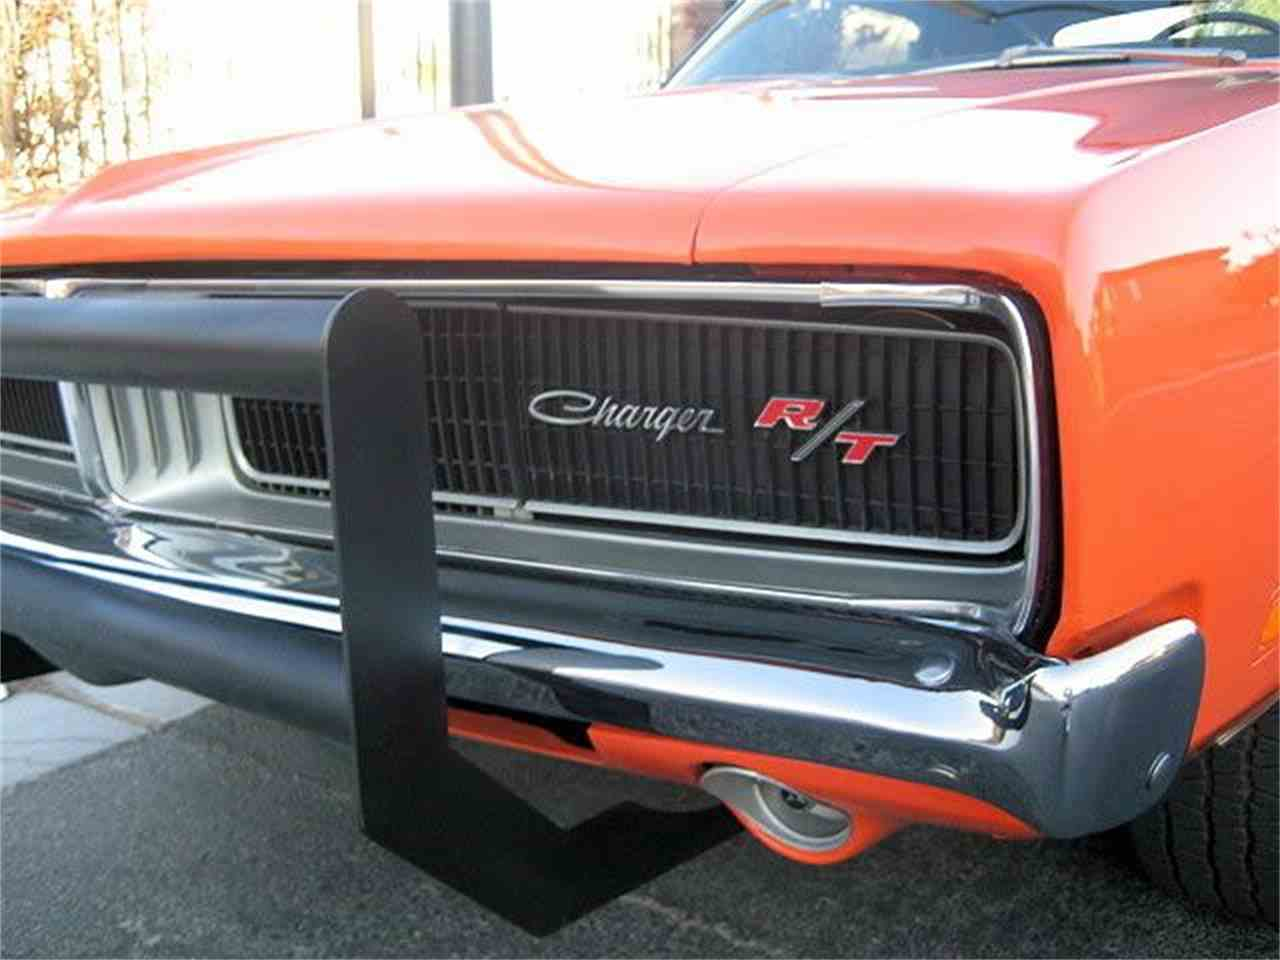 Large Picture of 1969 Dodge Charger located in Hickory North Carolina - $150,000.00 Offered by Paramount Classic Car Store - BGPN